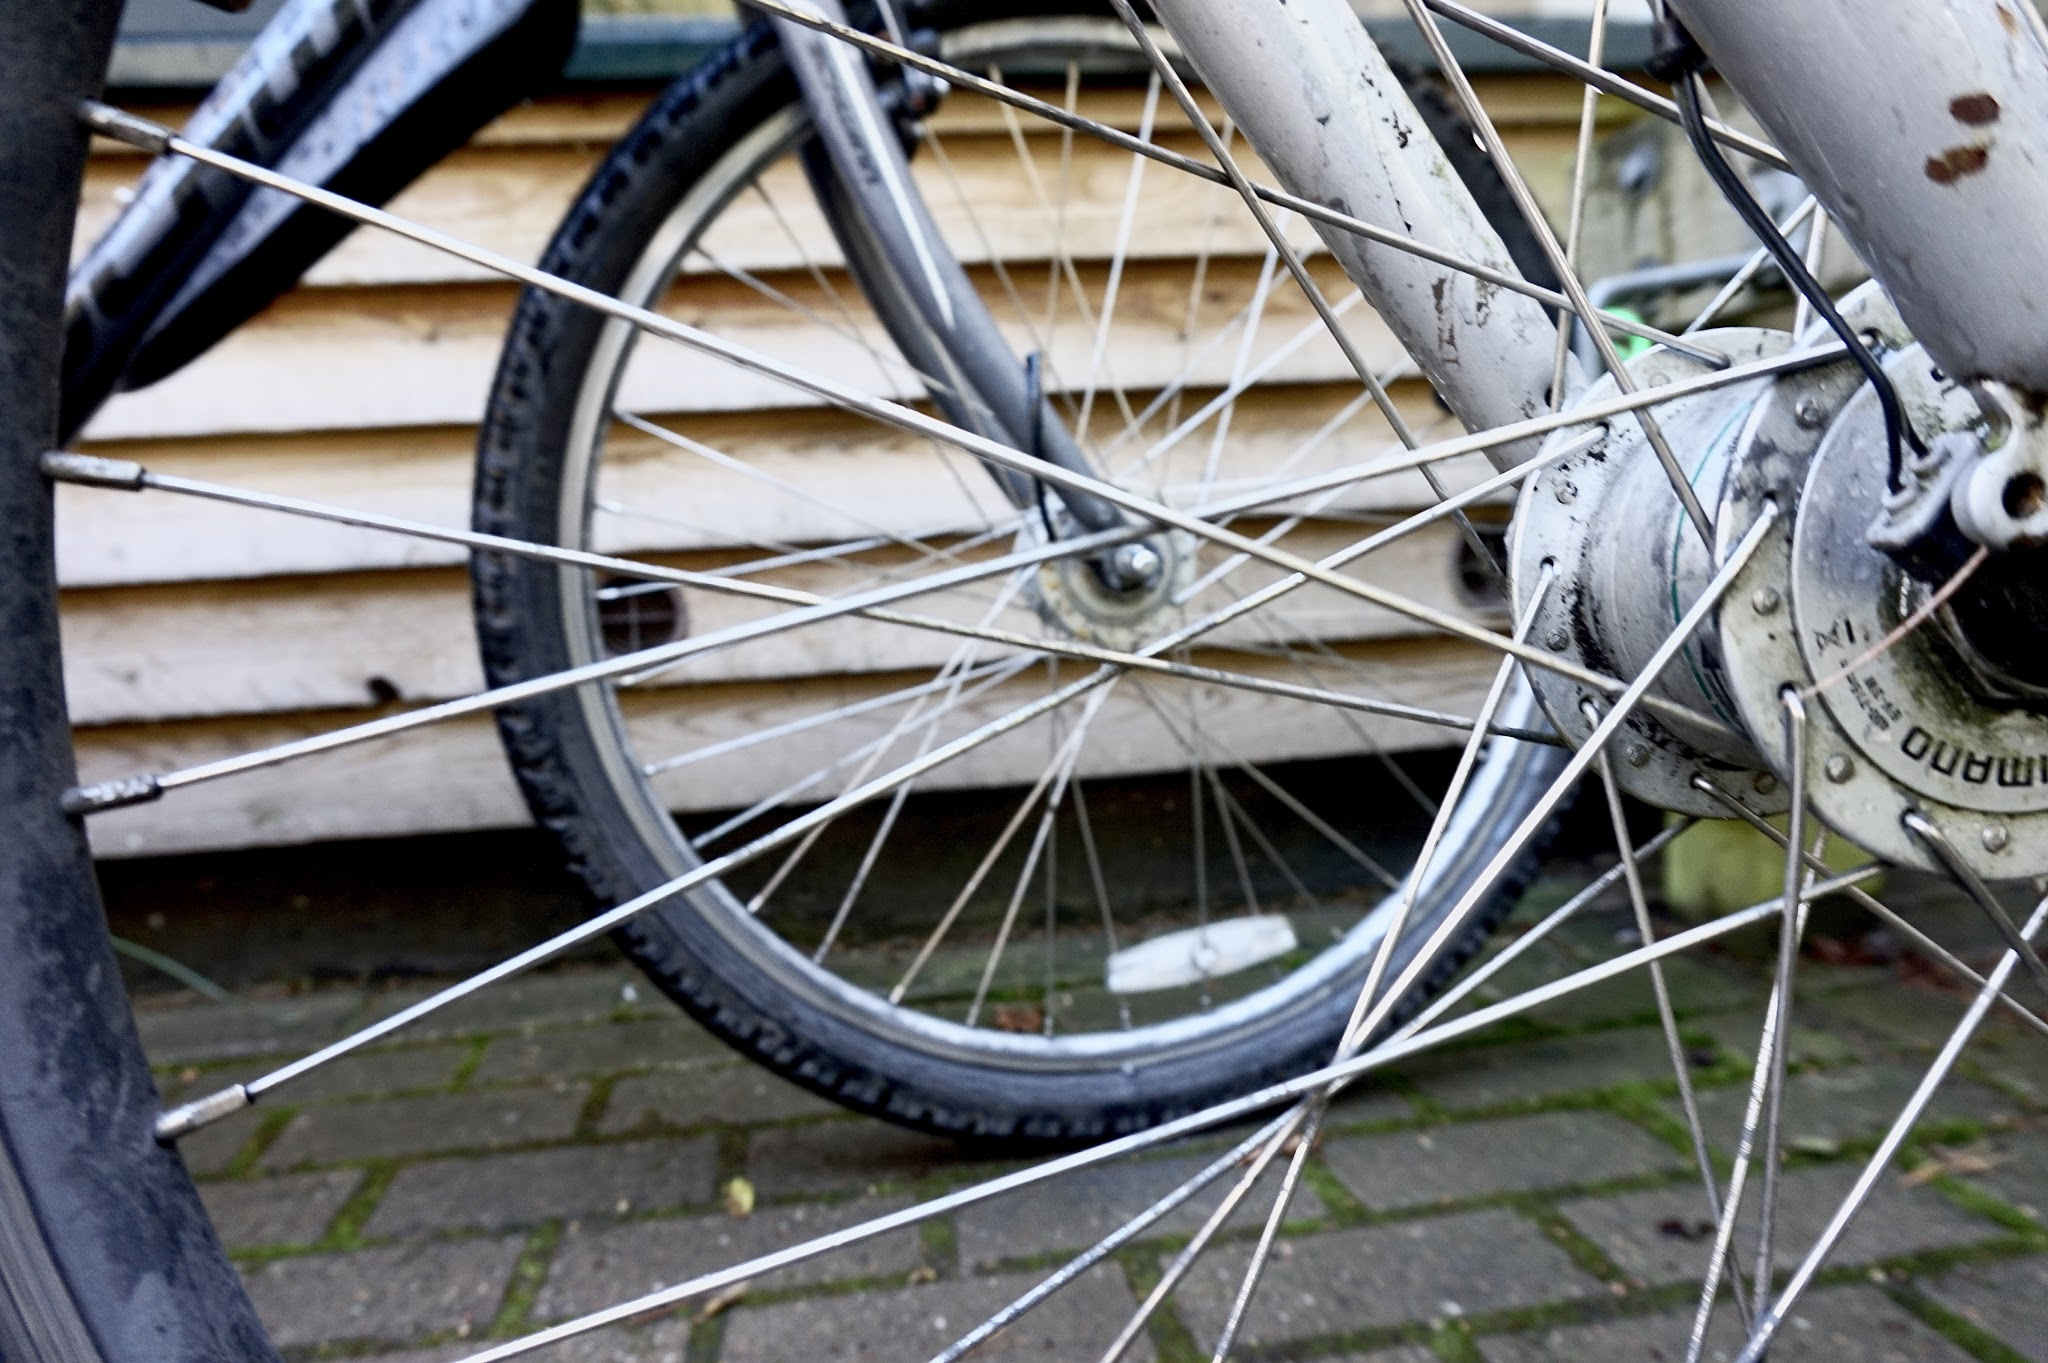 two bike wheels showing bike spokes